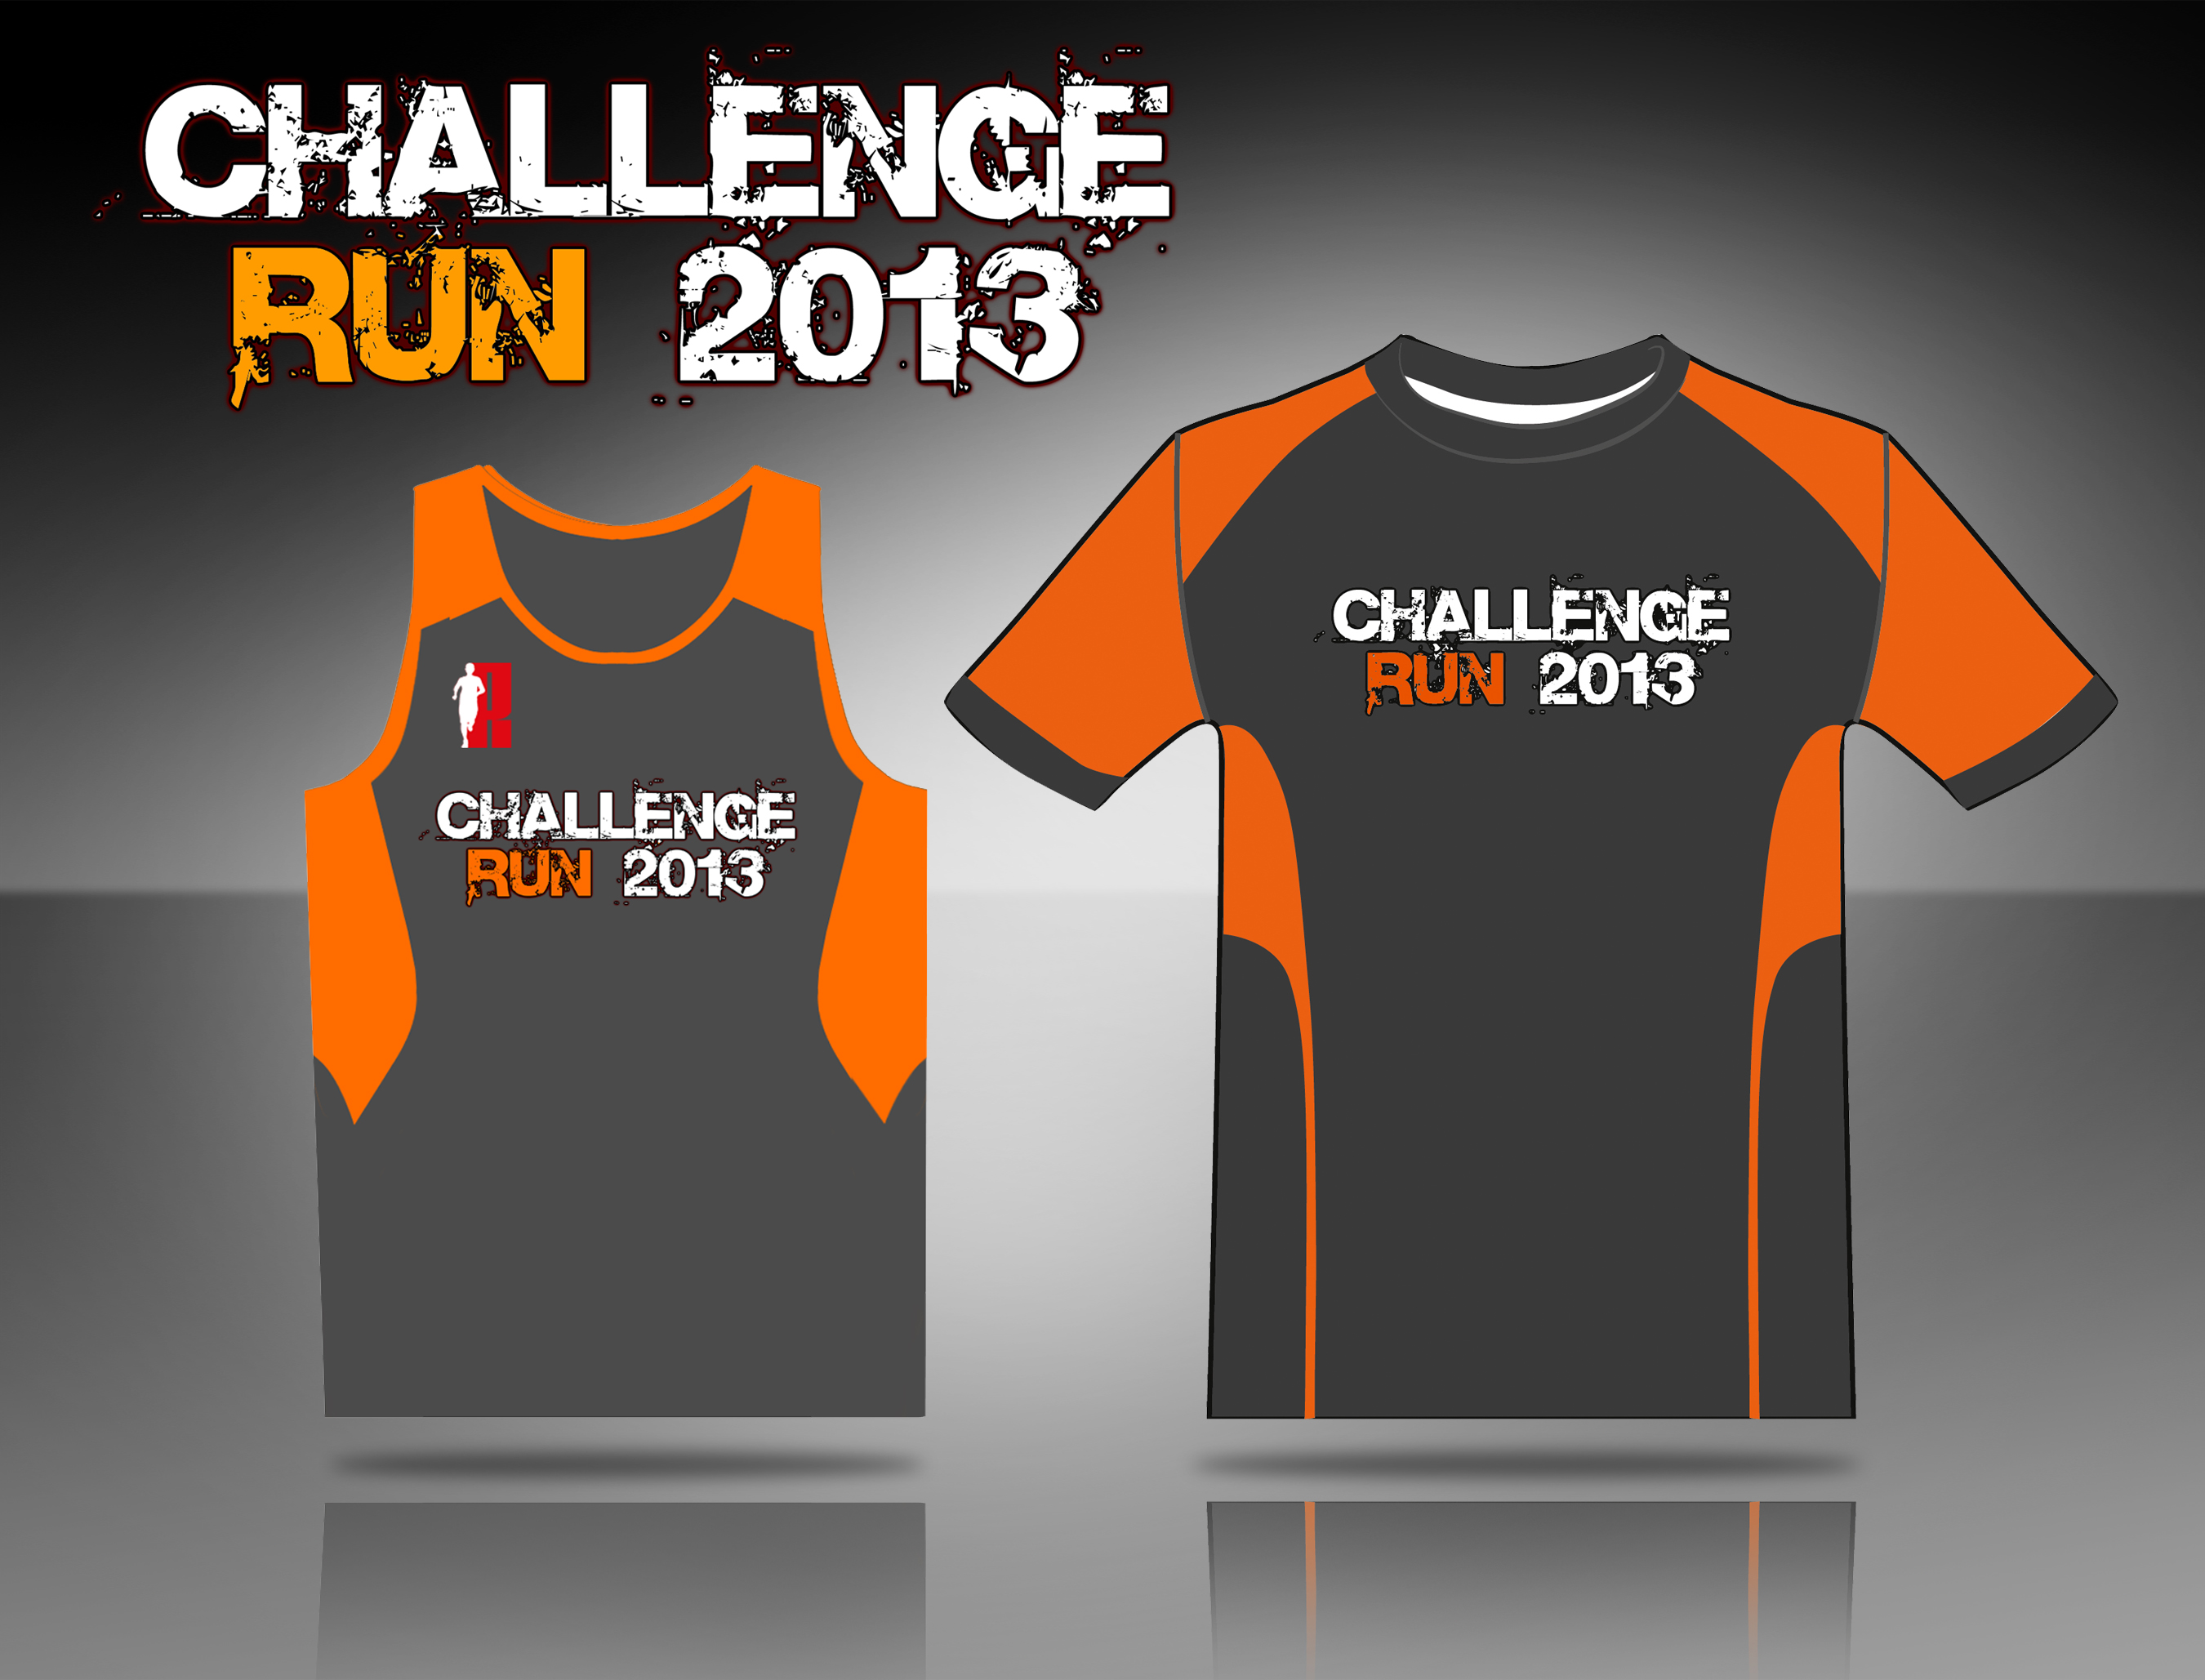 Challenge-Run-2013-Singlet-Finisher-Shirt-Design